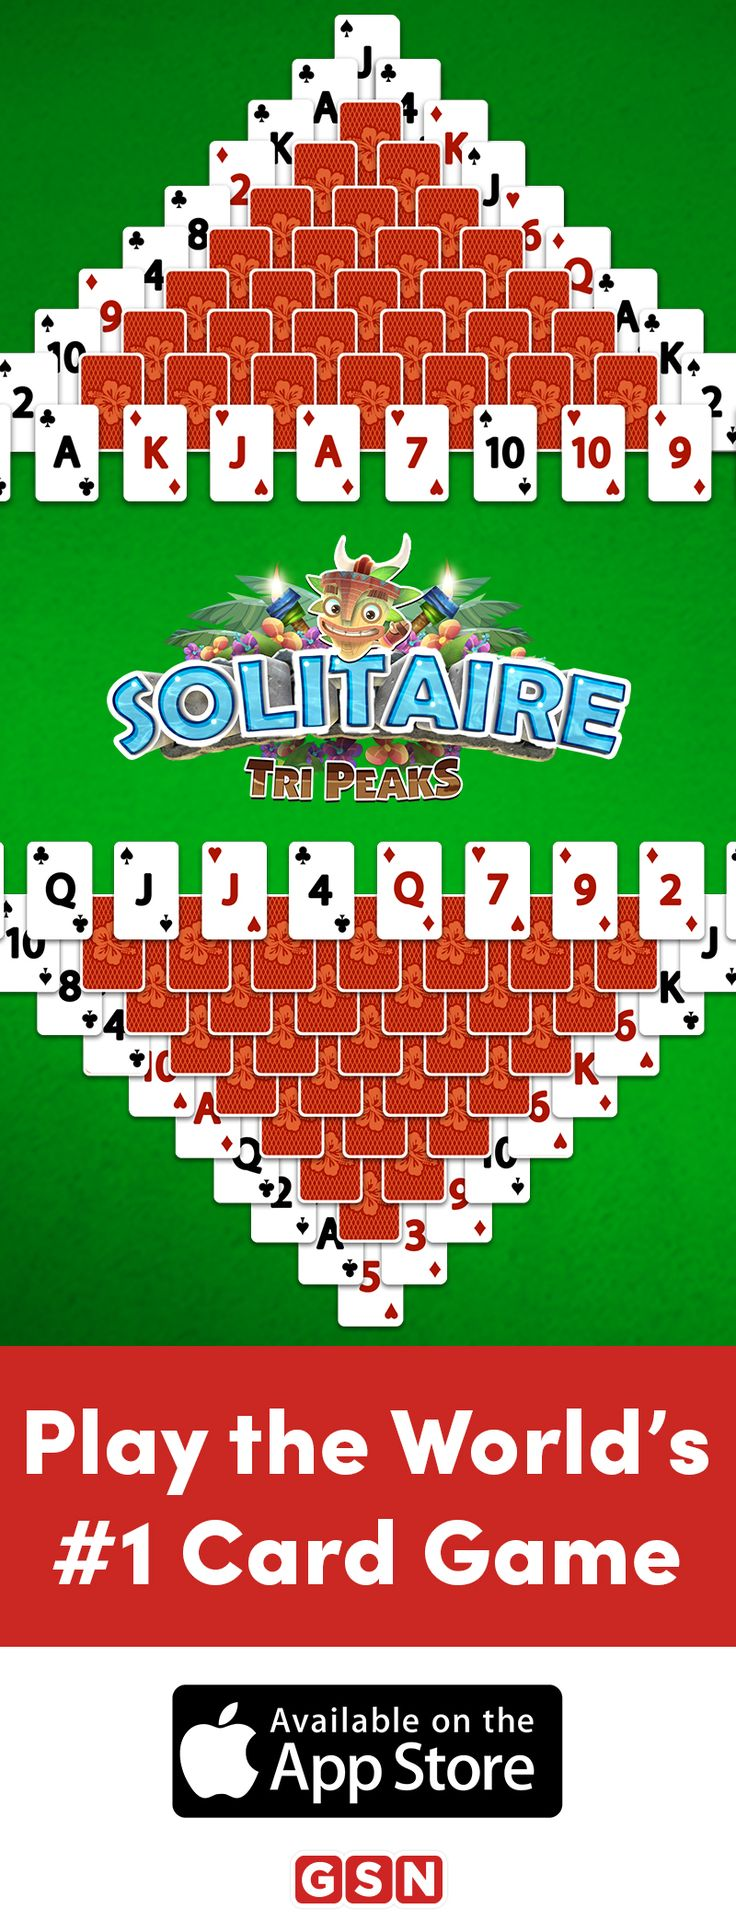 Play the hottest solitaire game around and download Solitaire TriPeaks today. Register now, and you'll get 12,500 Coins on the house. Play this popular game and challenge yourself with over 850 levels.   https://itunes.apple.com/us/app/solitaire-tripeaks/id892521917?mt=8